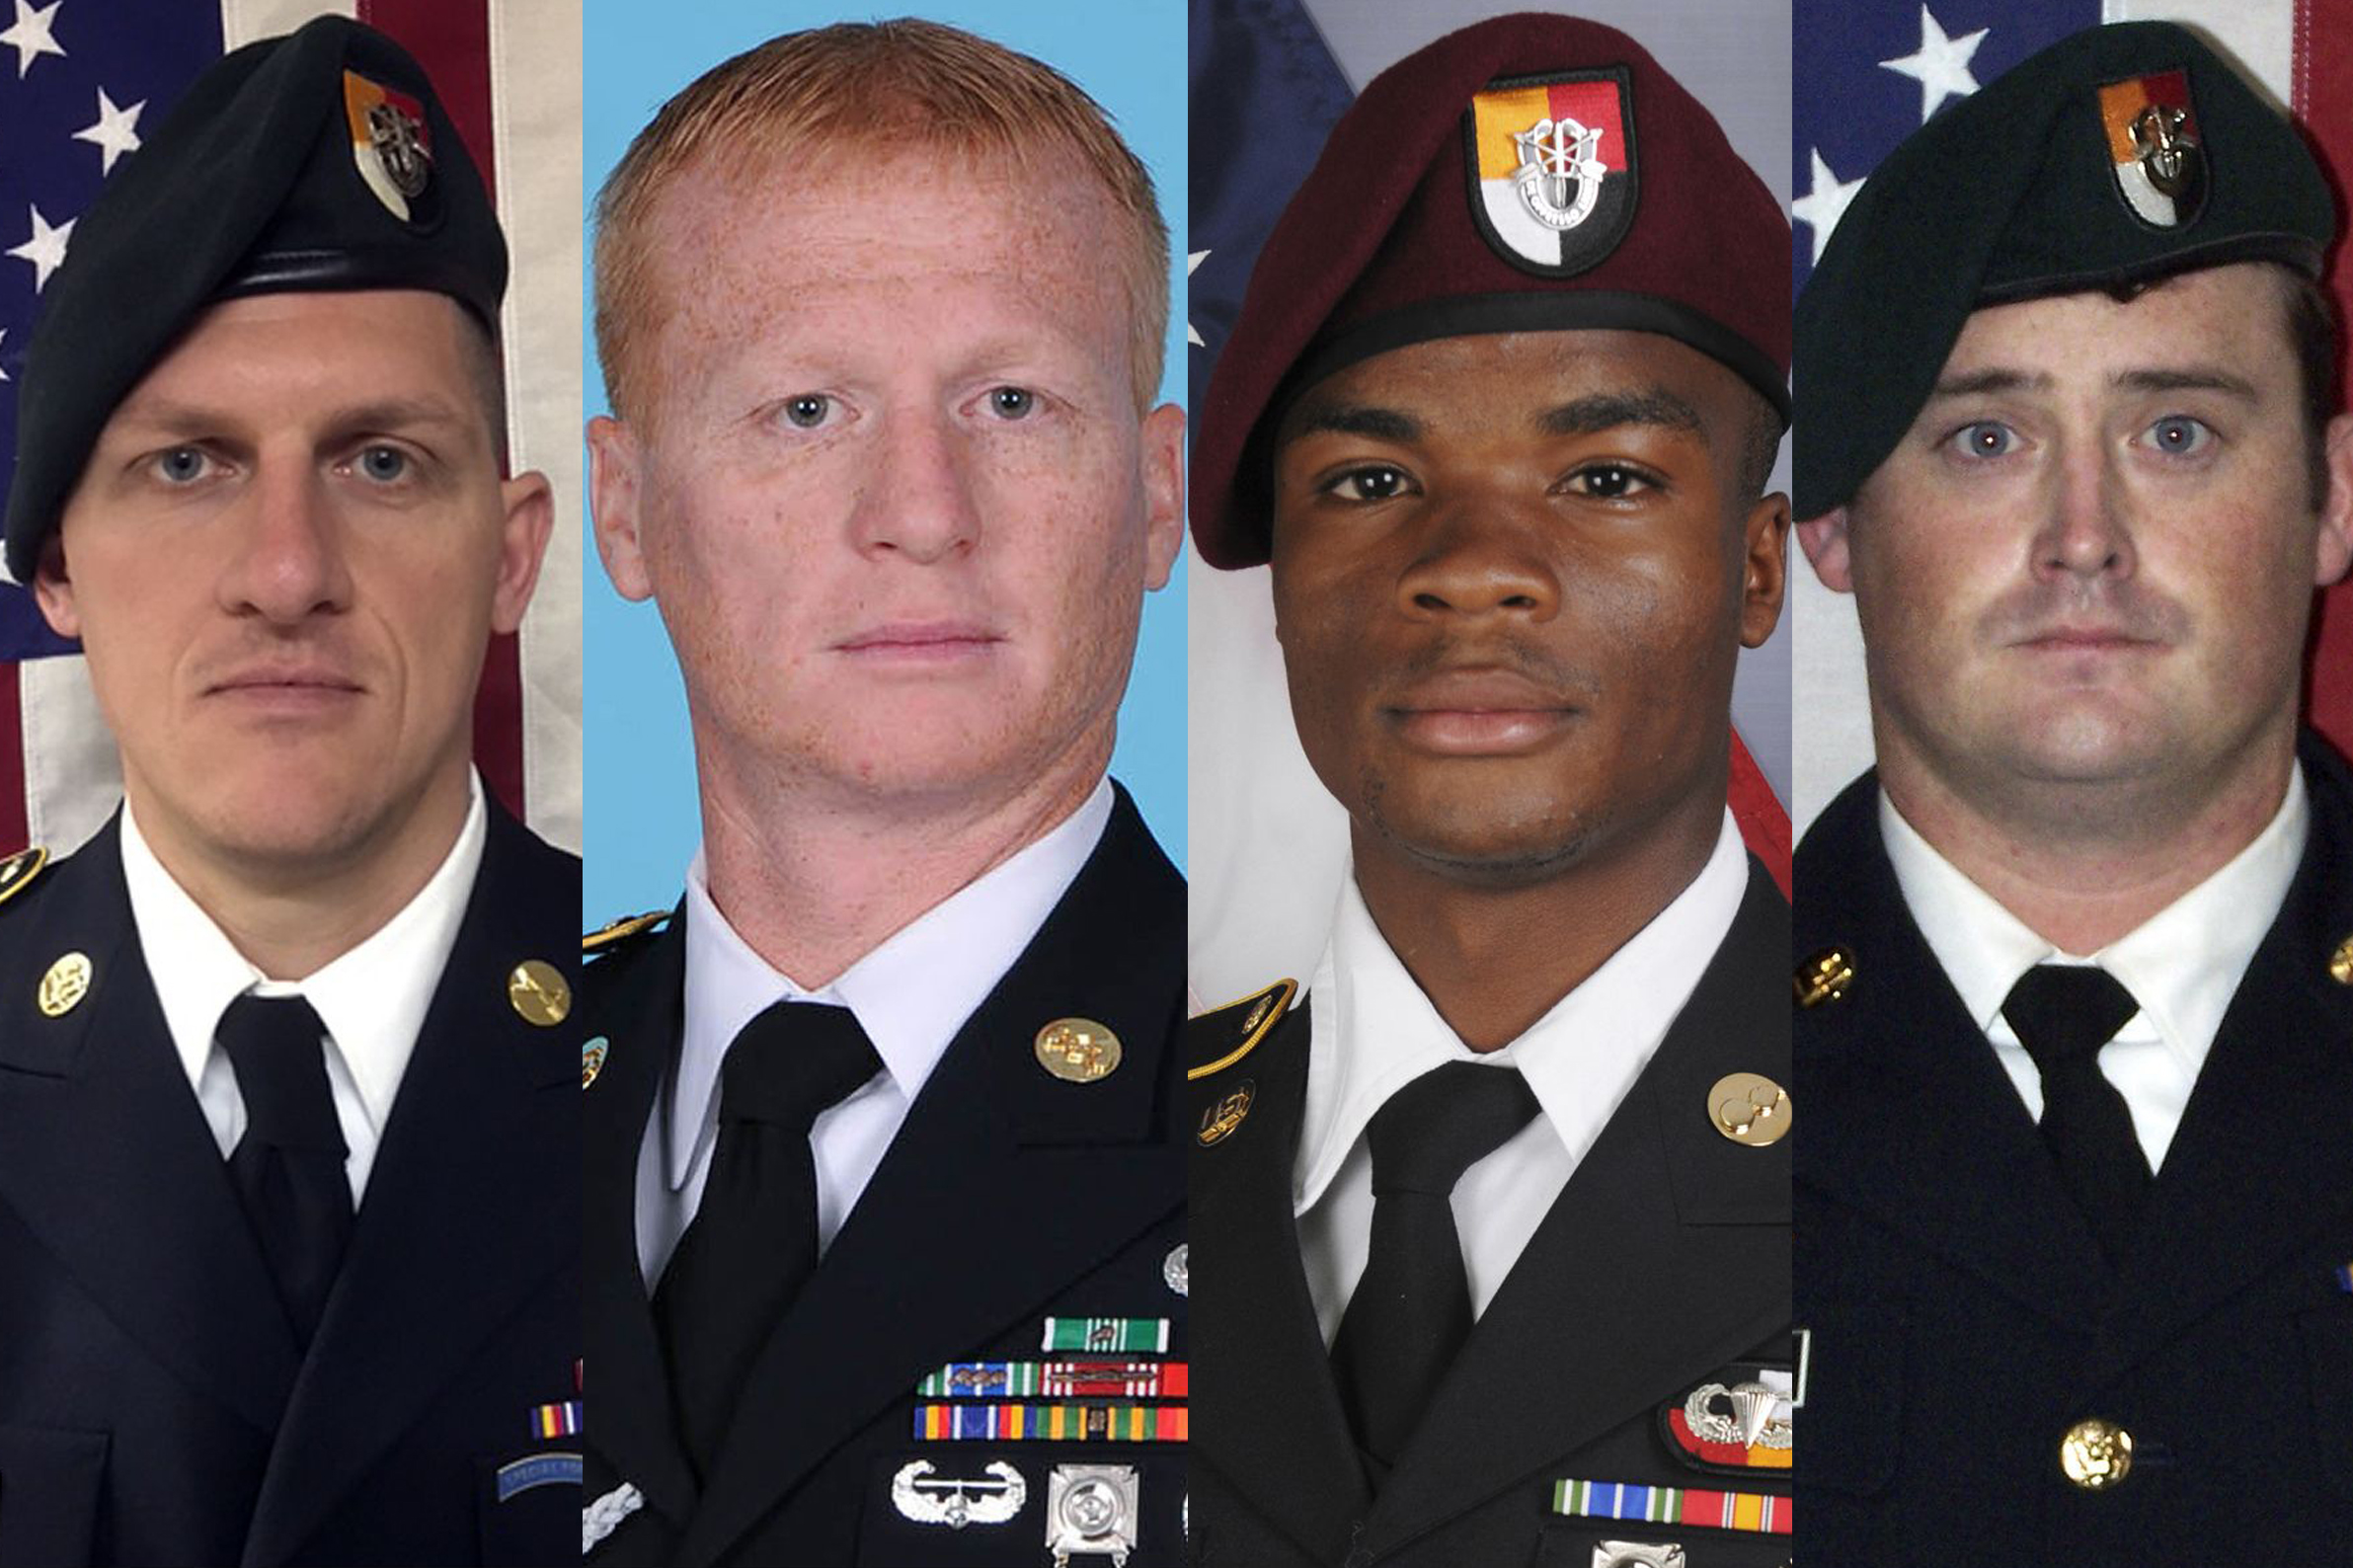 These images provided by the U.S. Army show, from left, Staff Sgt. Bryan C. Black, 35, of Puyallup, Wash.; Staff Sgt. Jeremiah W. Johnson, 39, of Springboro, Ohio; Sgt. La David Johnson of Miami Gardens, Fla.; and Staff Sgt. Dustin M. Wright, 29, of Lyons, Ga. All four were killed in Niger, when a joint patrol of American and Niger forces was ambushed by militants believed linked to the Islamic State group